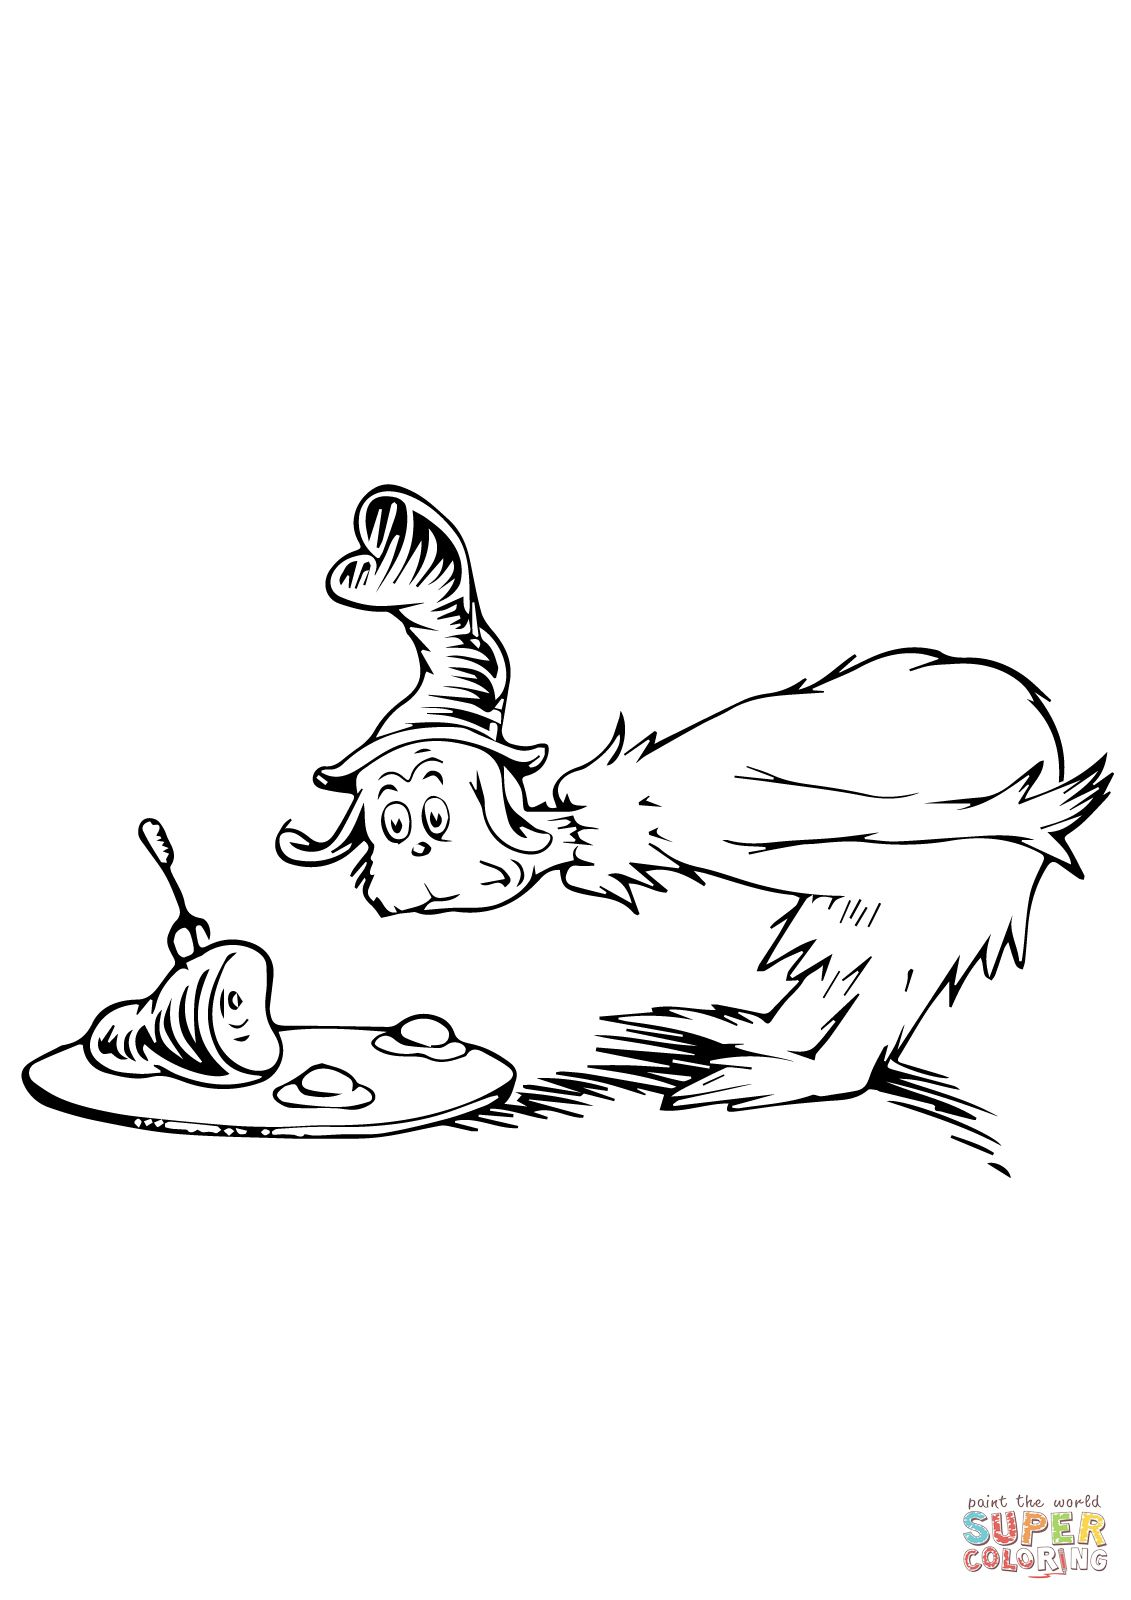 Green eggs and ham coloring page | Dr seuss | Pinterest